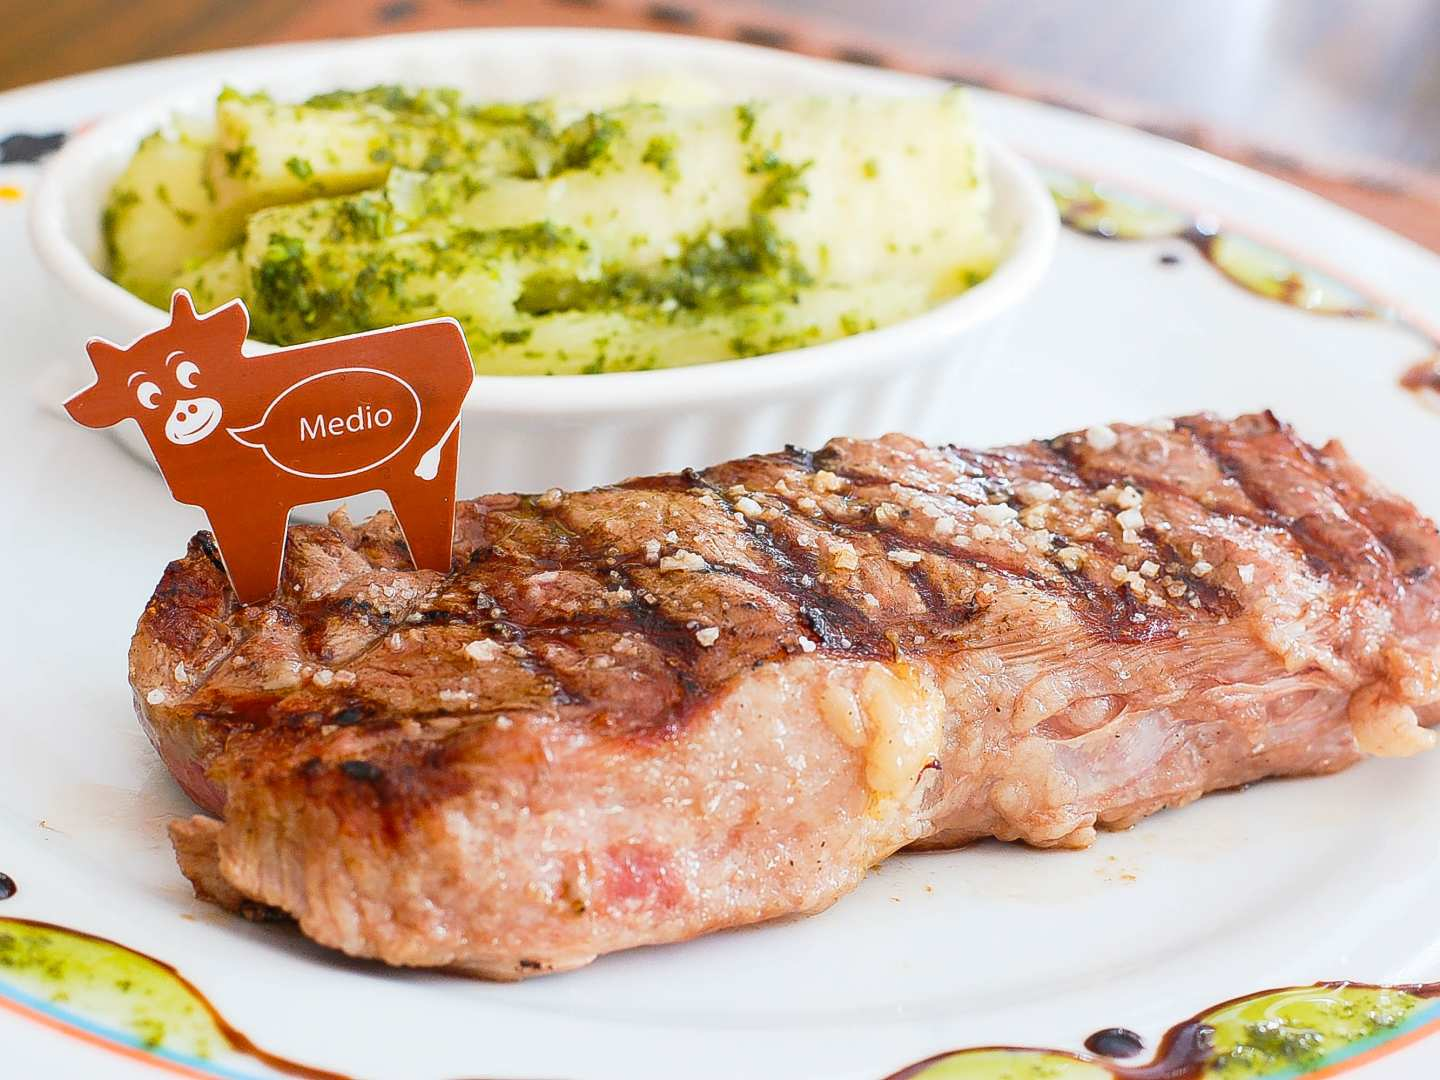 Churrasco Argentino By Caminito's